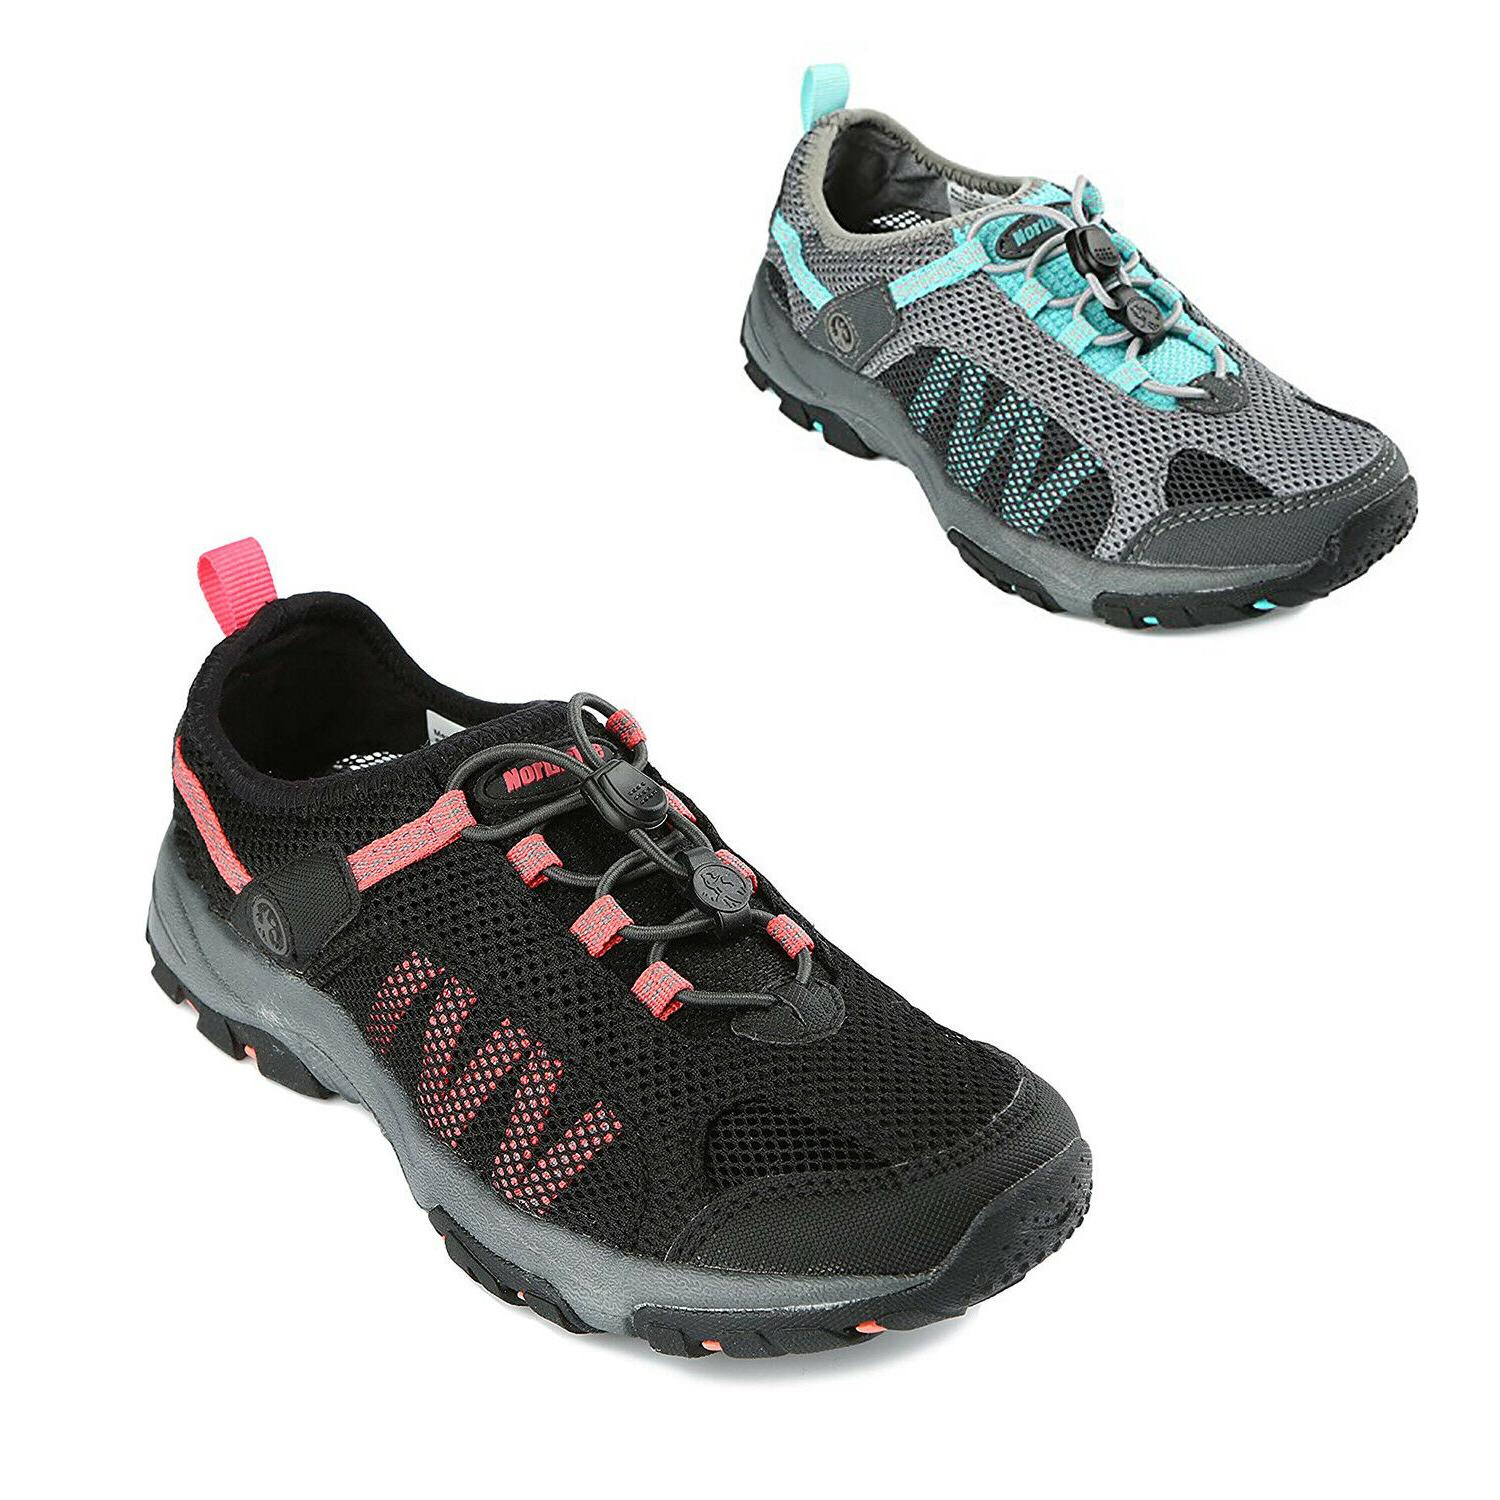 womens hiking shoes niagara water shoes grey